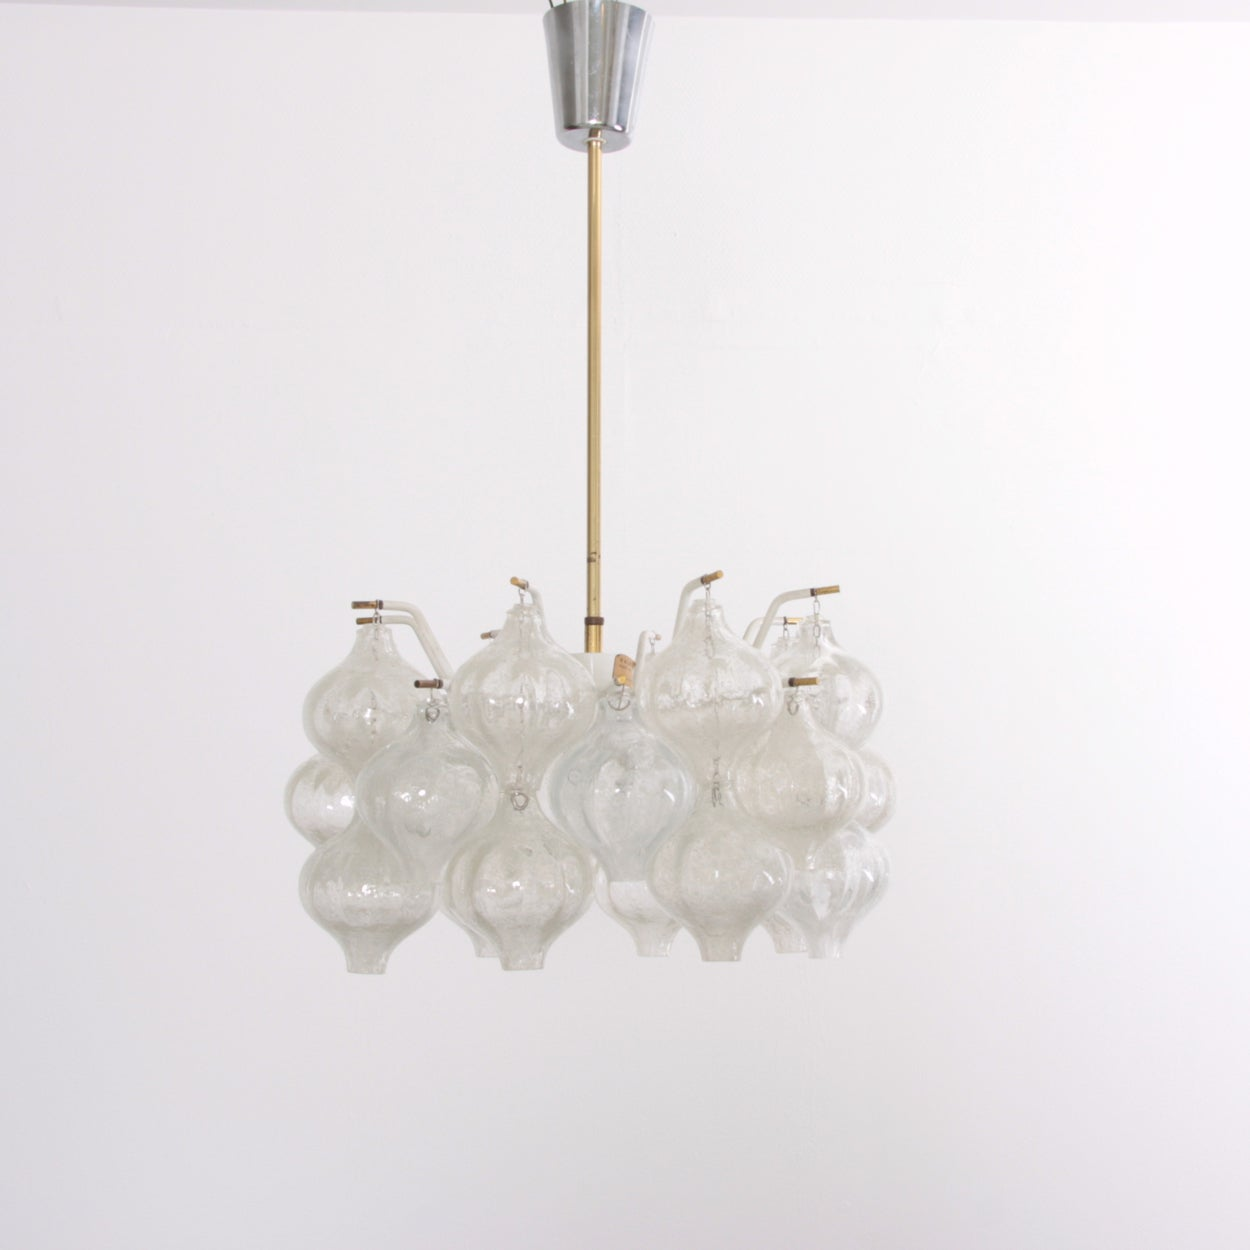 Beautiful Kalmar Tulipan chandelier in excellent condition. Dimensions: Height of glass part is 24 cm / 9.5 inch.